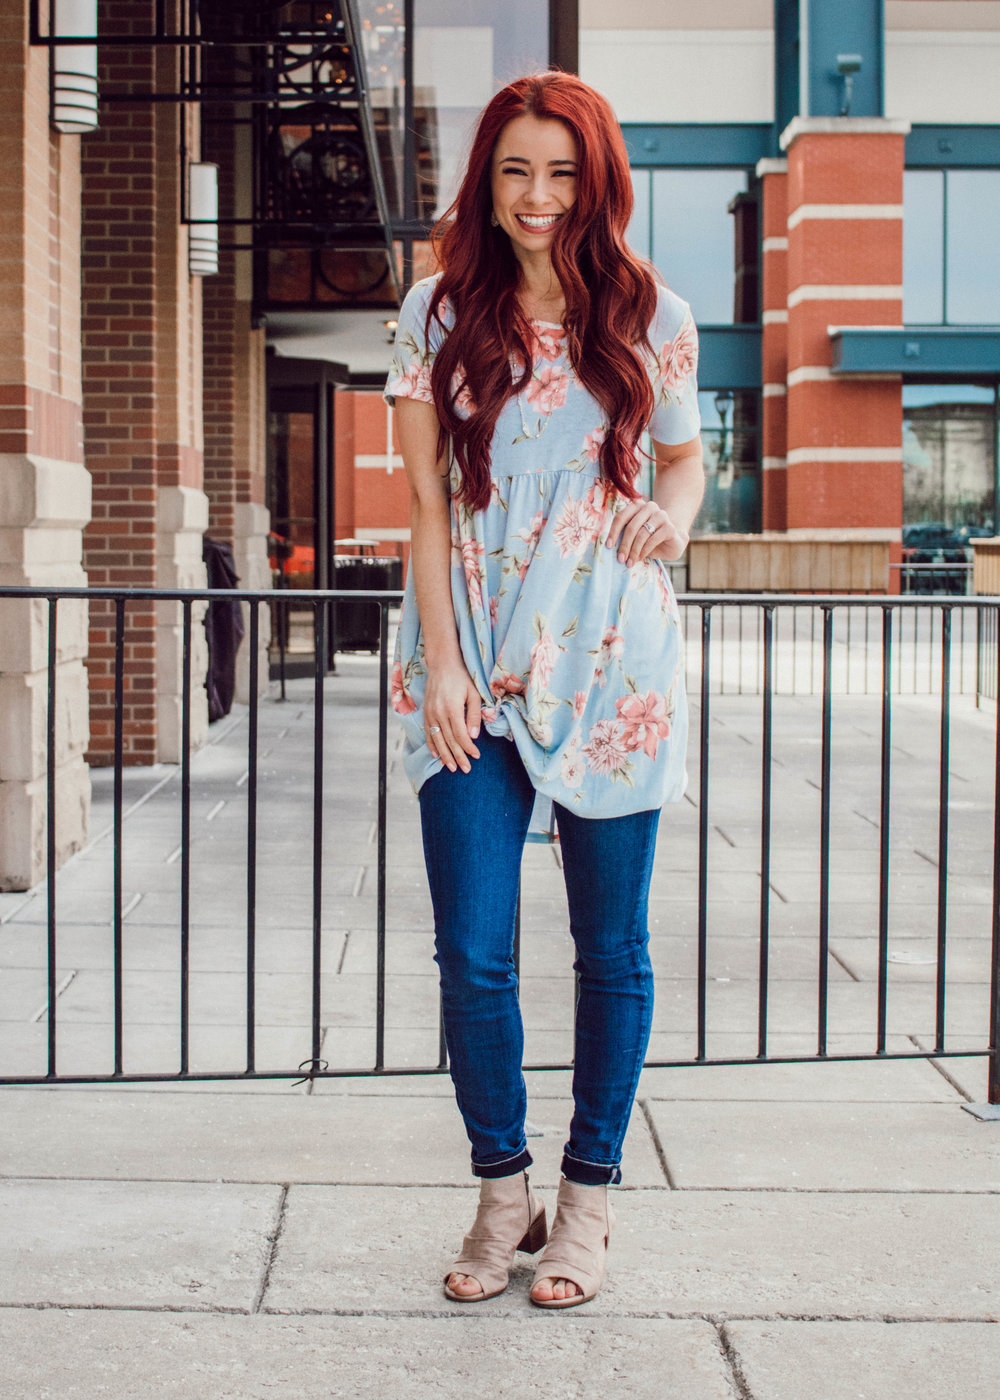 5 Tips to help you dress for your body type by popular Indianapolis fashion blogger Trendy in Indy